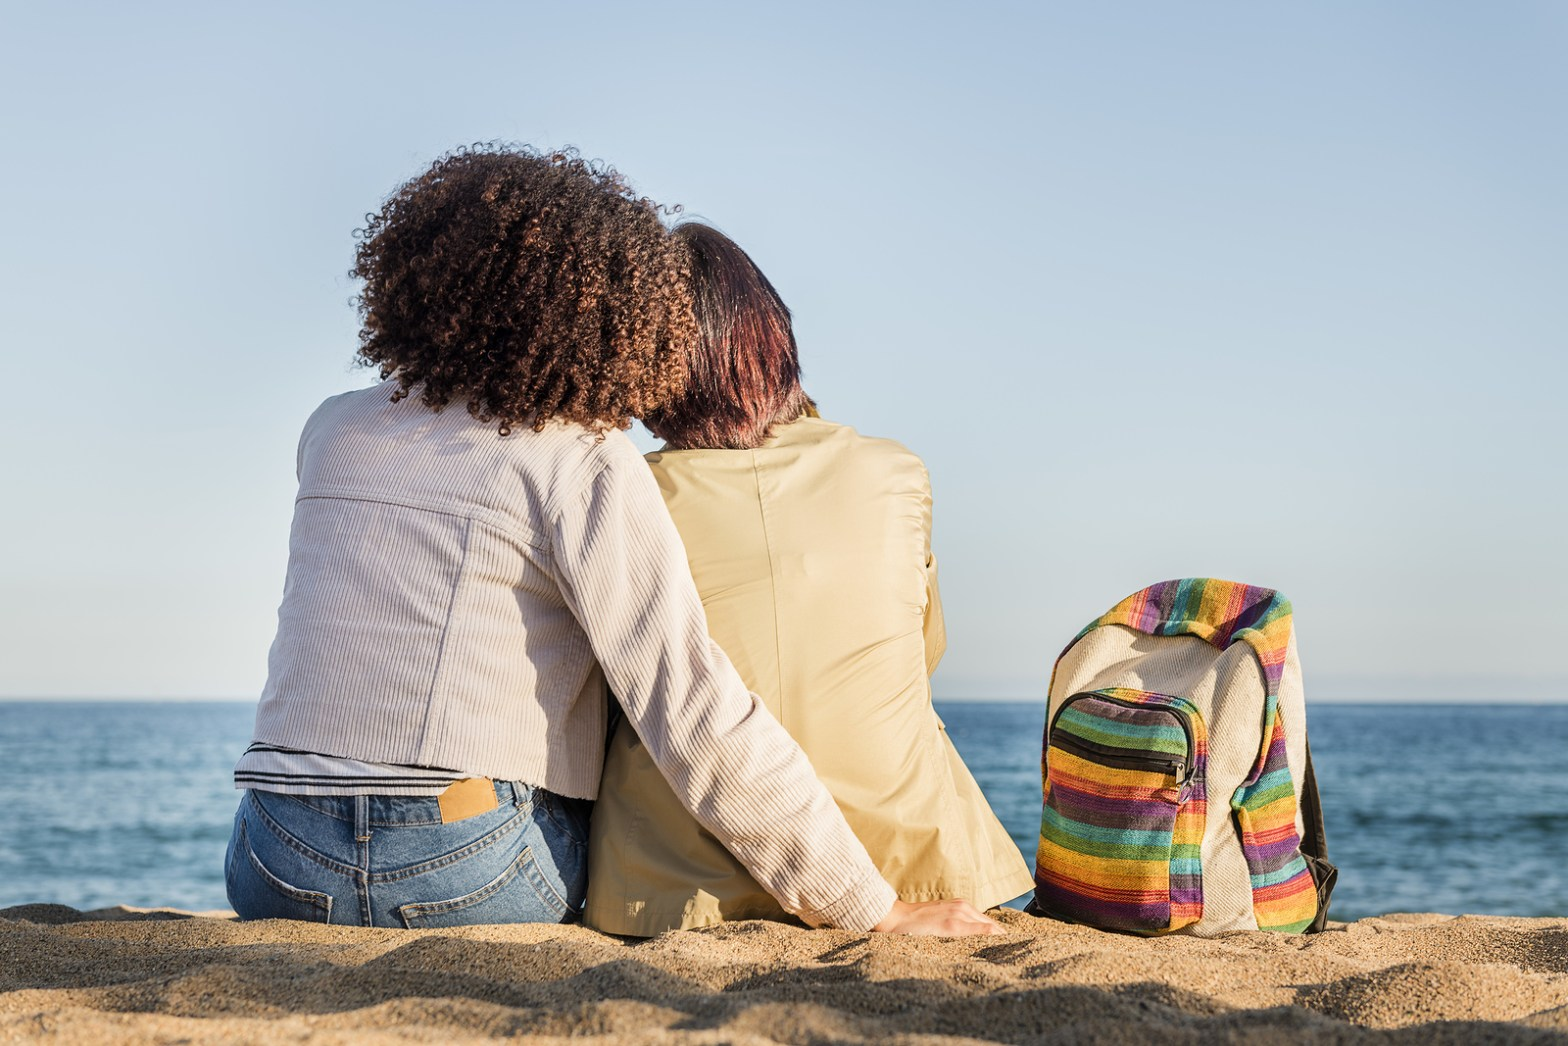 A lesbian couple embrace in front of the sea next to a backpack with the rainbow flag colors as the sun sets behind them. This could symbolize the love forged after meeting with an LGBT therapist to talk through their issues. We offer counseling for women in Orange County, CA, online LGBTQ therapy, and other services.